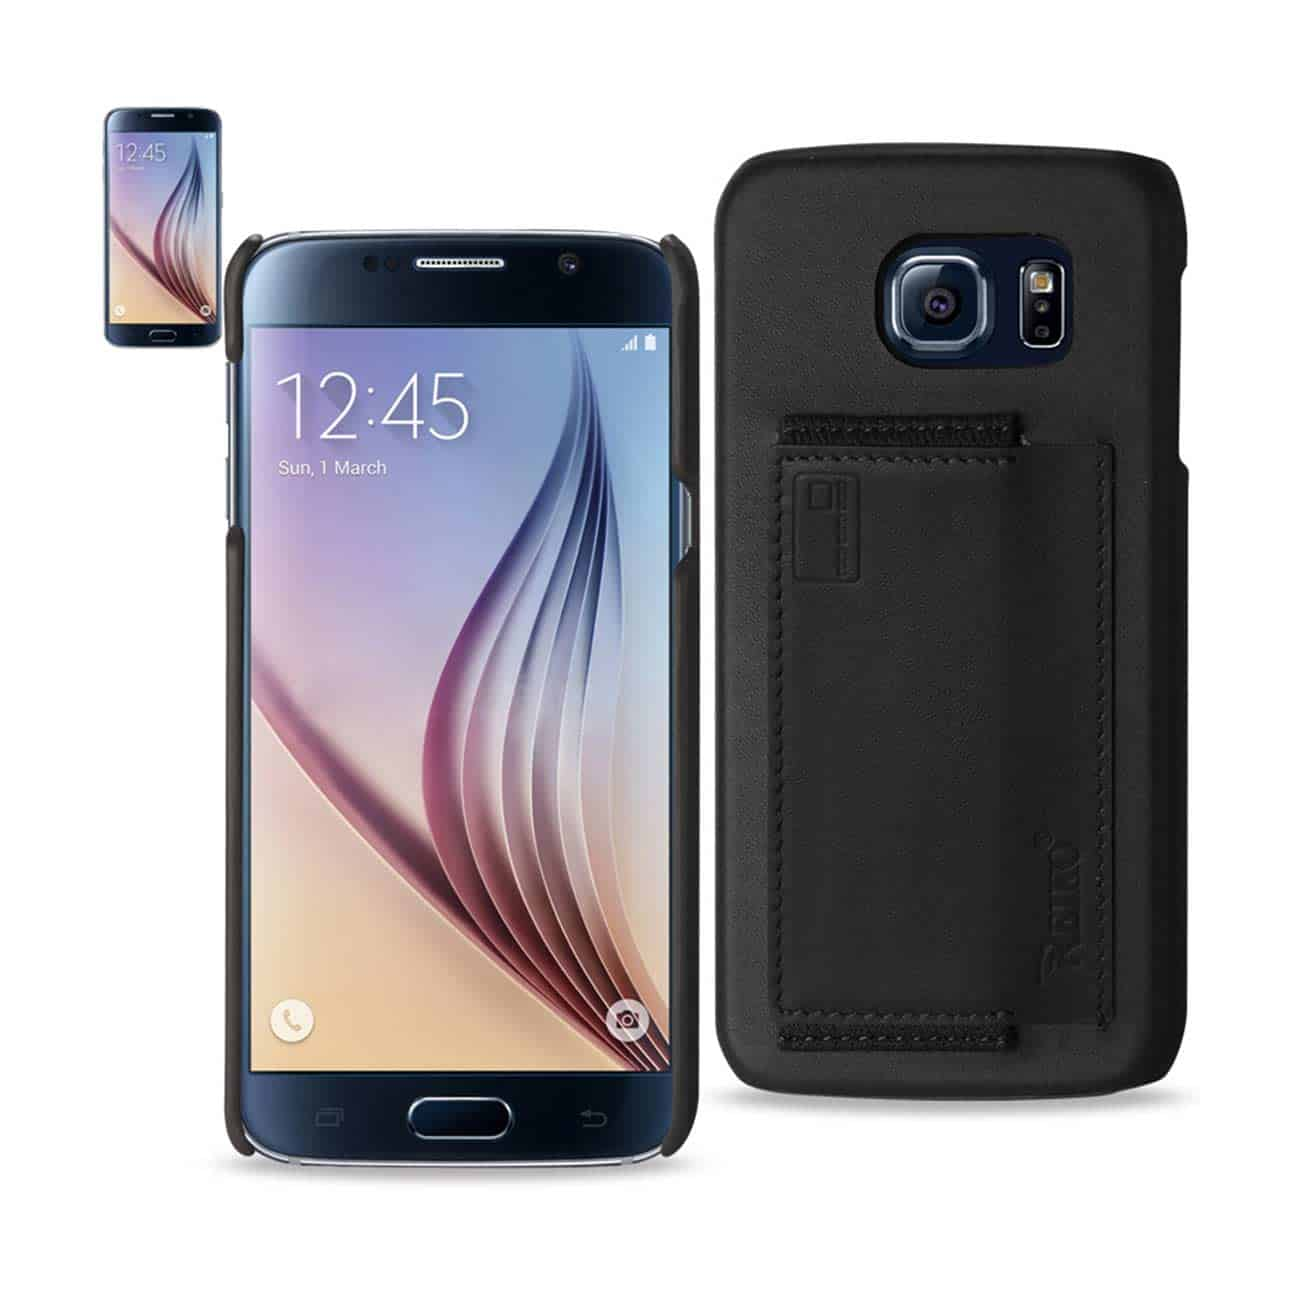 SAMSUNG GALAXY S6 RFID GENUINE LEATHER CASE PROTECTION AND KEY HOLDER IN BLACK